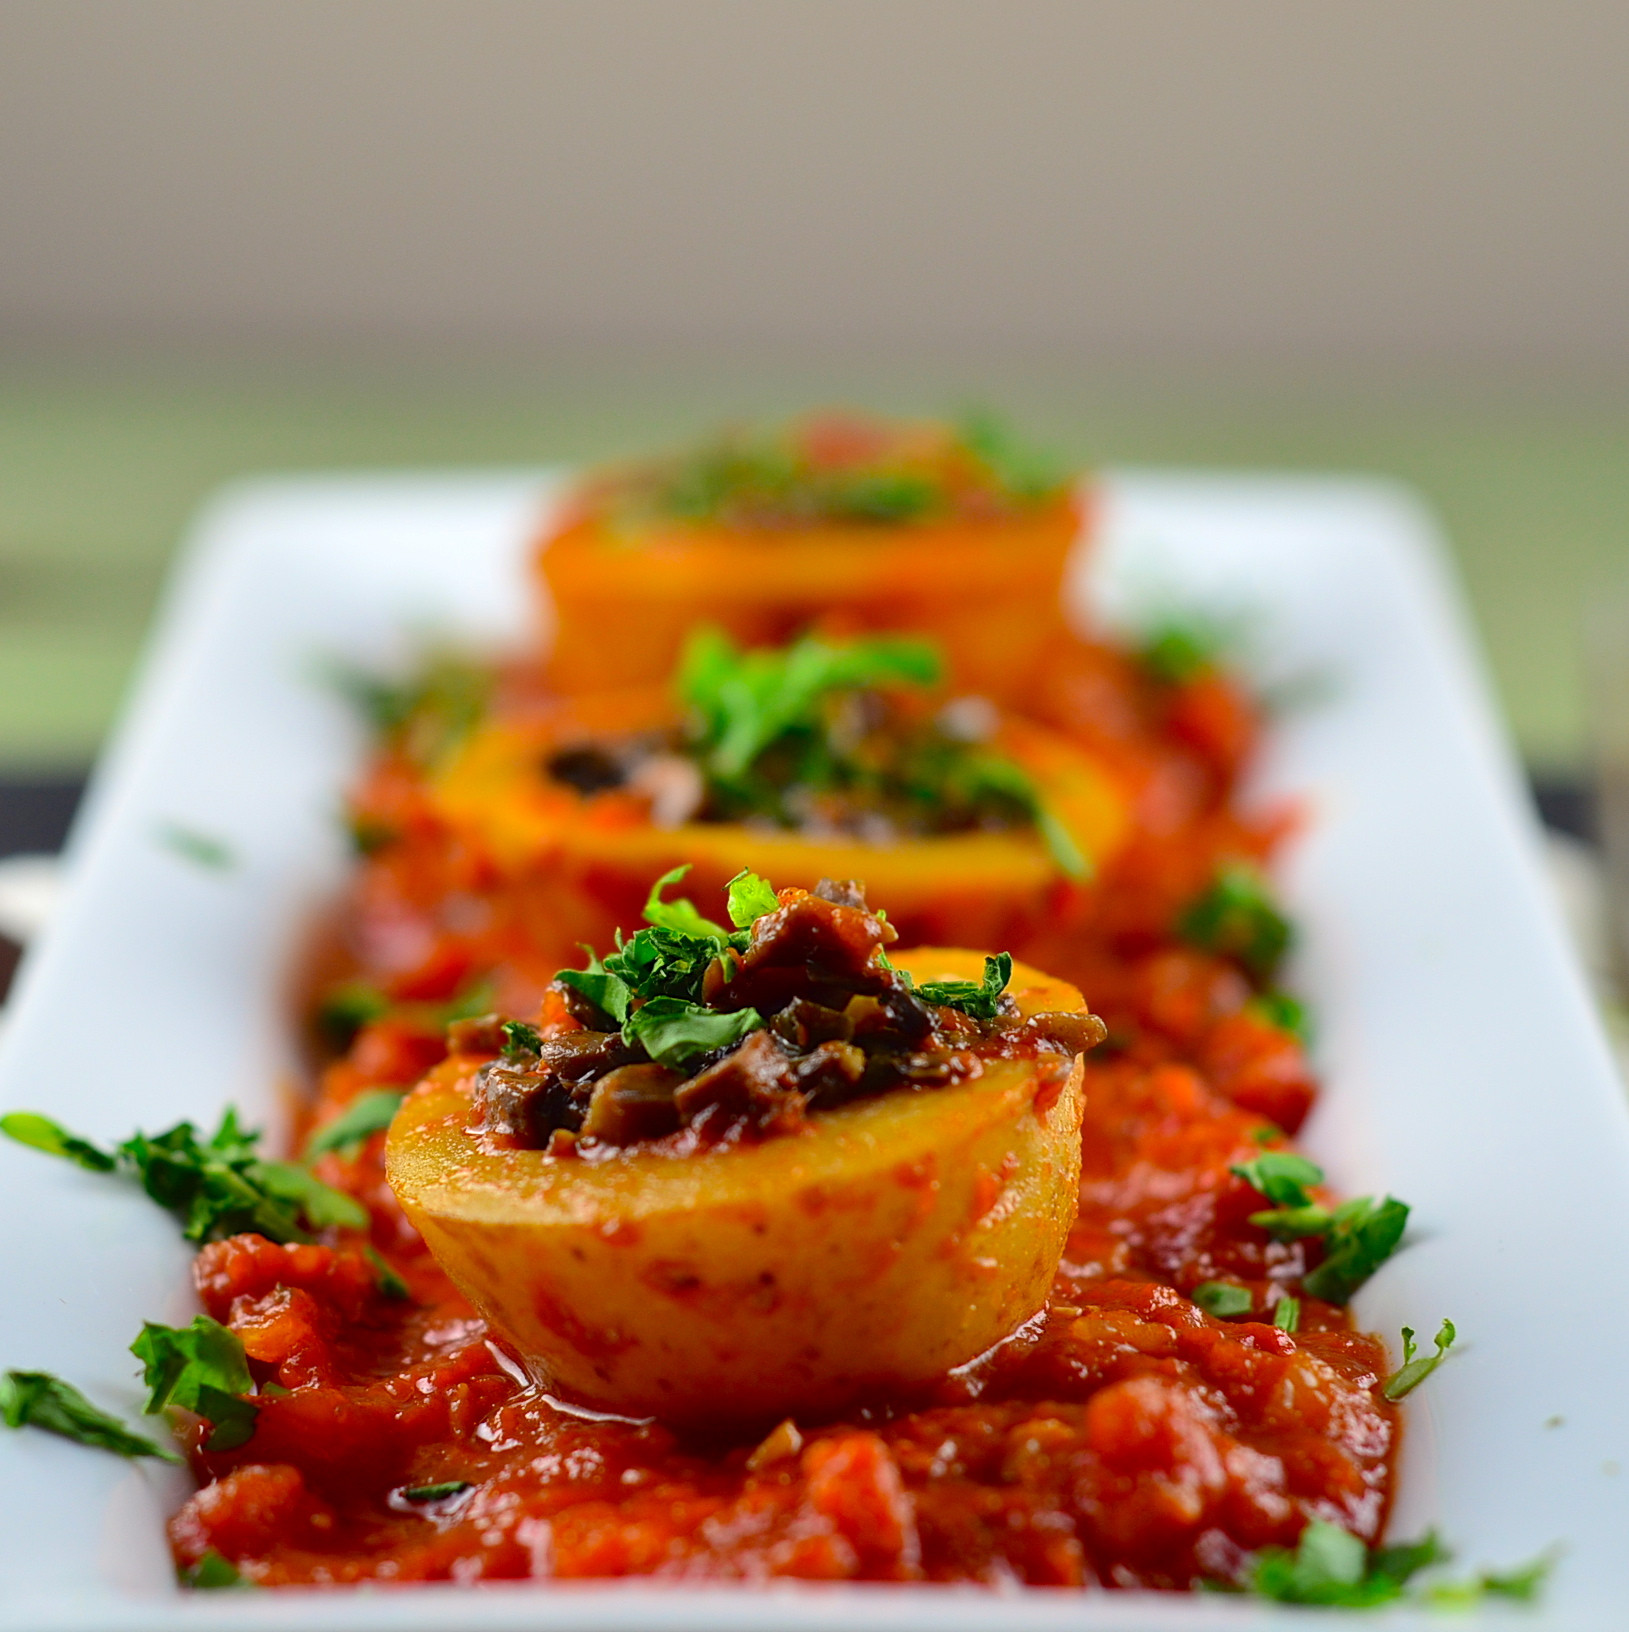 Vegetarian Recipes With Potatoes  26 Amazing Ve arian Passover Recipes You ll Want To Make